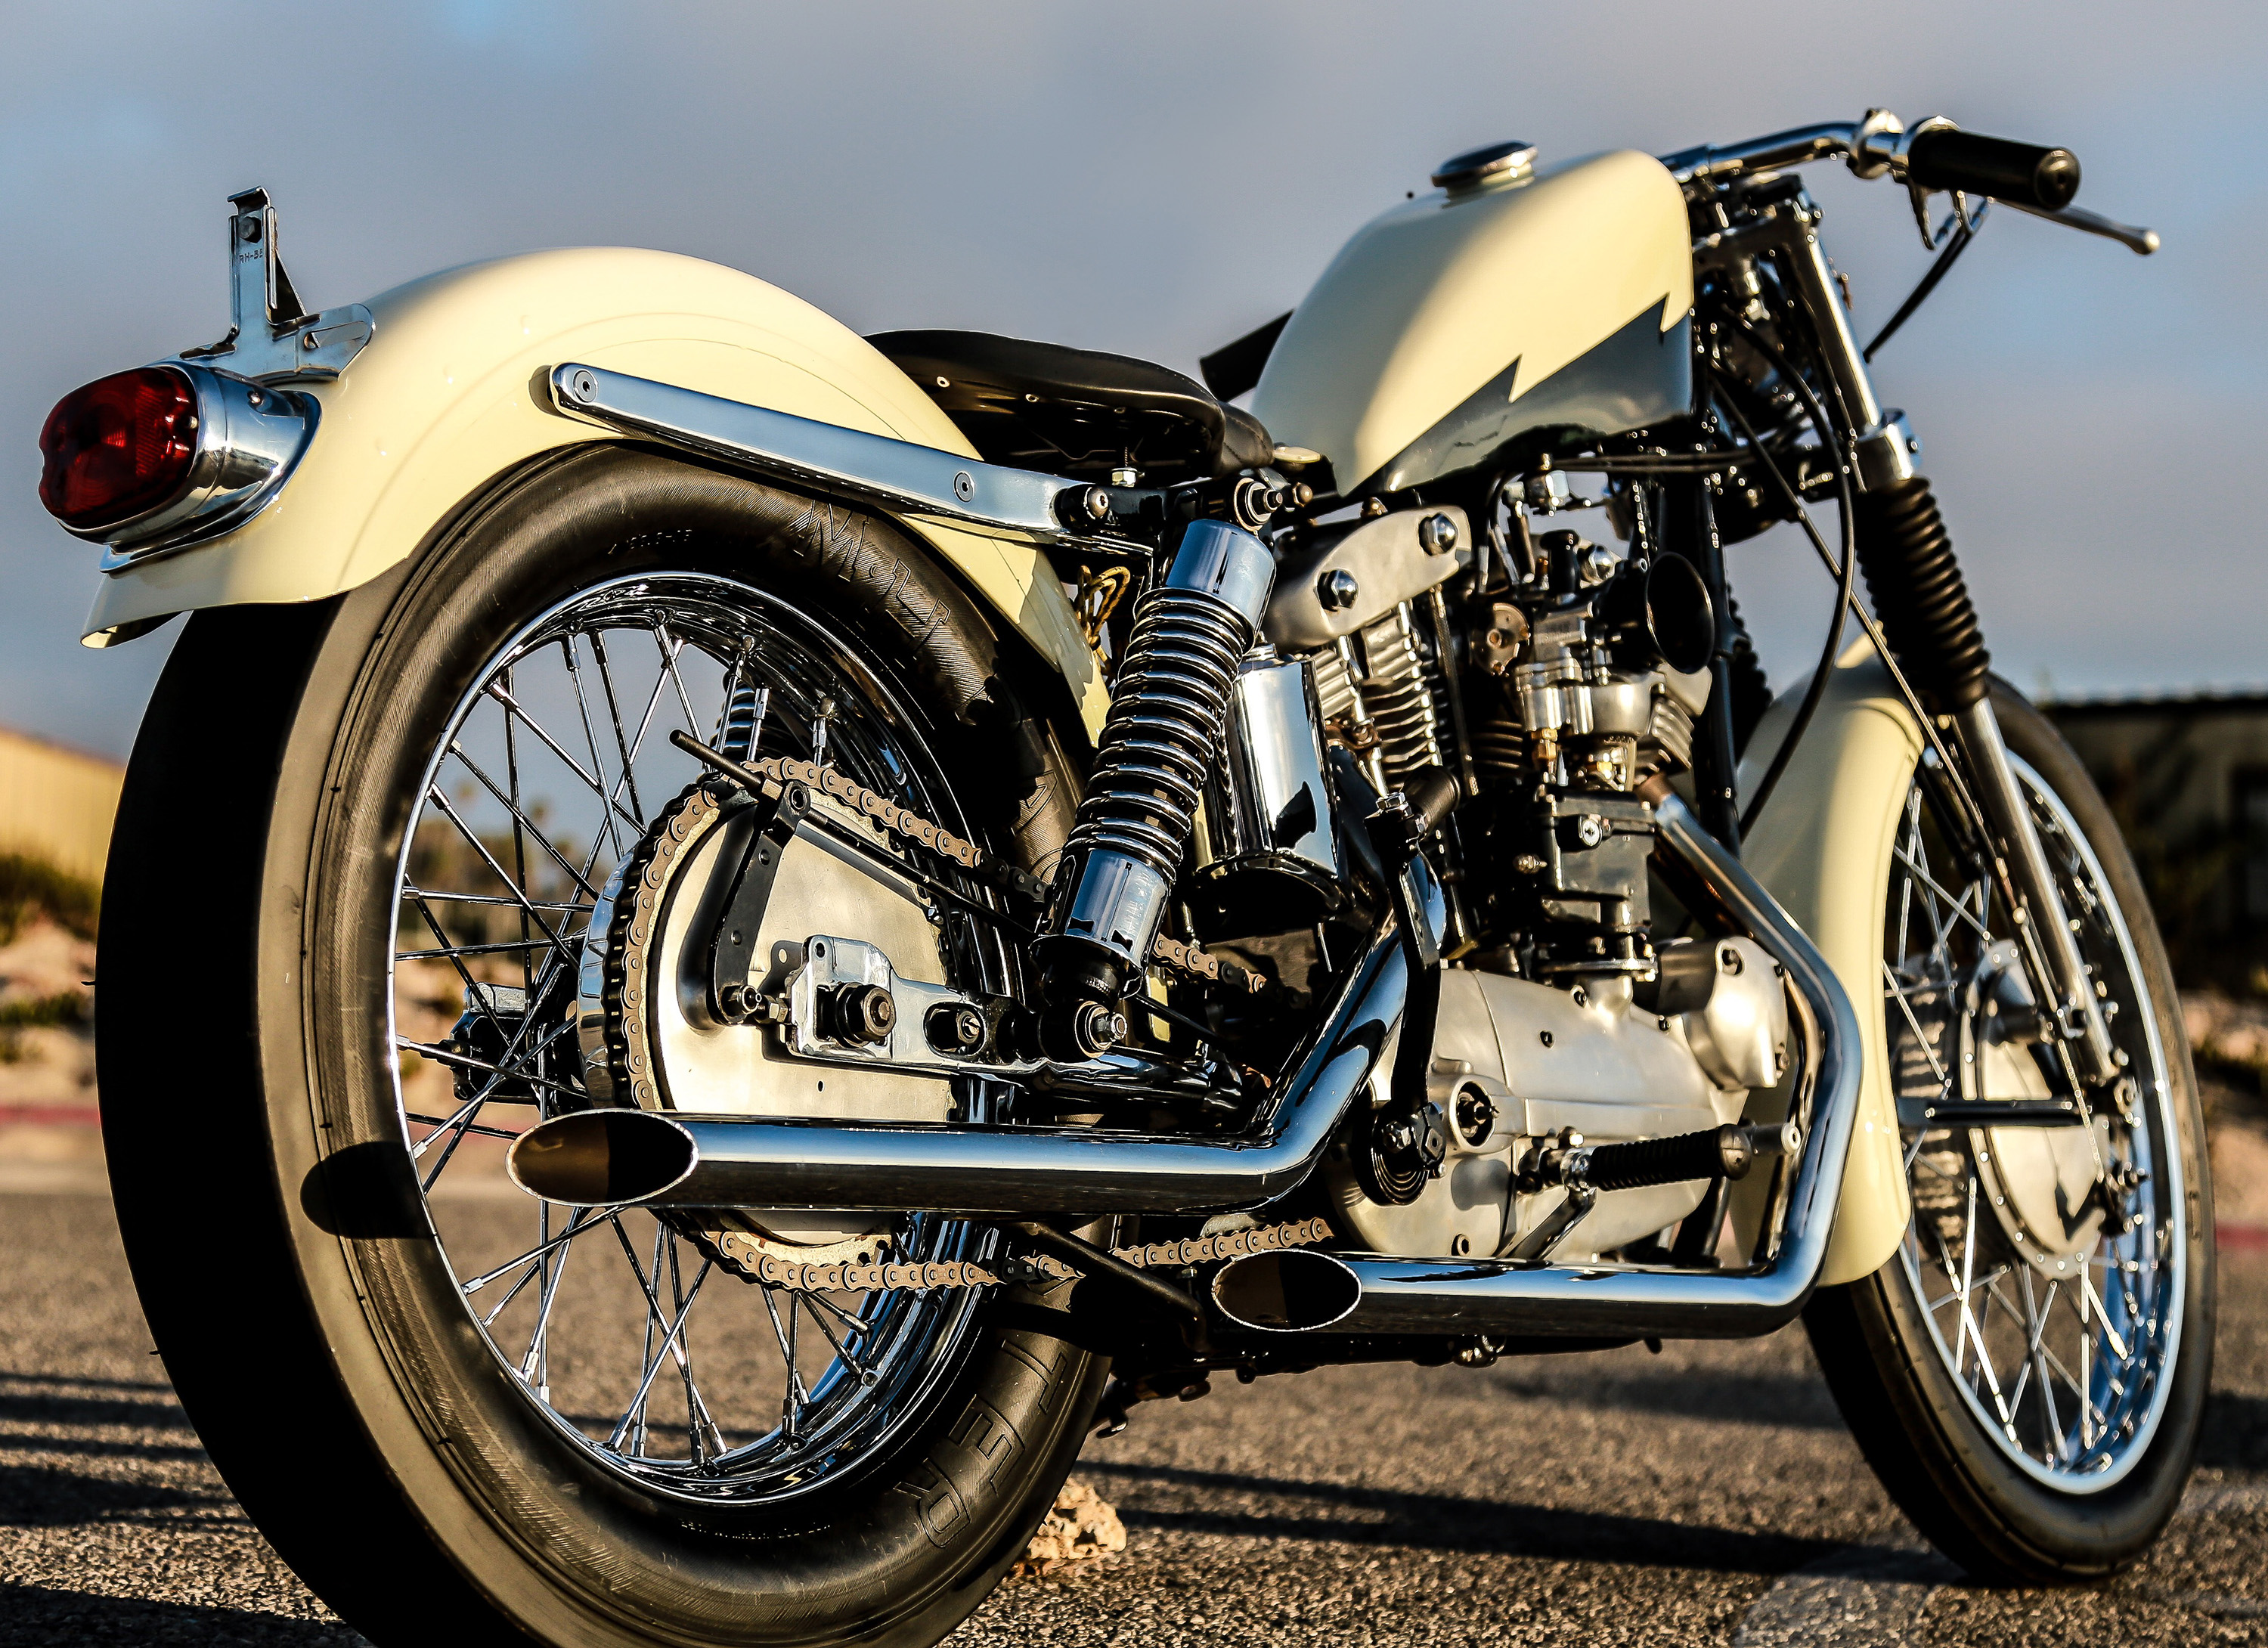 vvmc raffle bike 2016 raffle creator enter to win a 1961 harley davidson xlch sportster built and restored by the venice vintage motorcycle club drawing will take place saturday